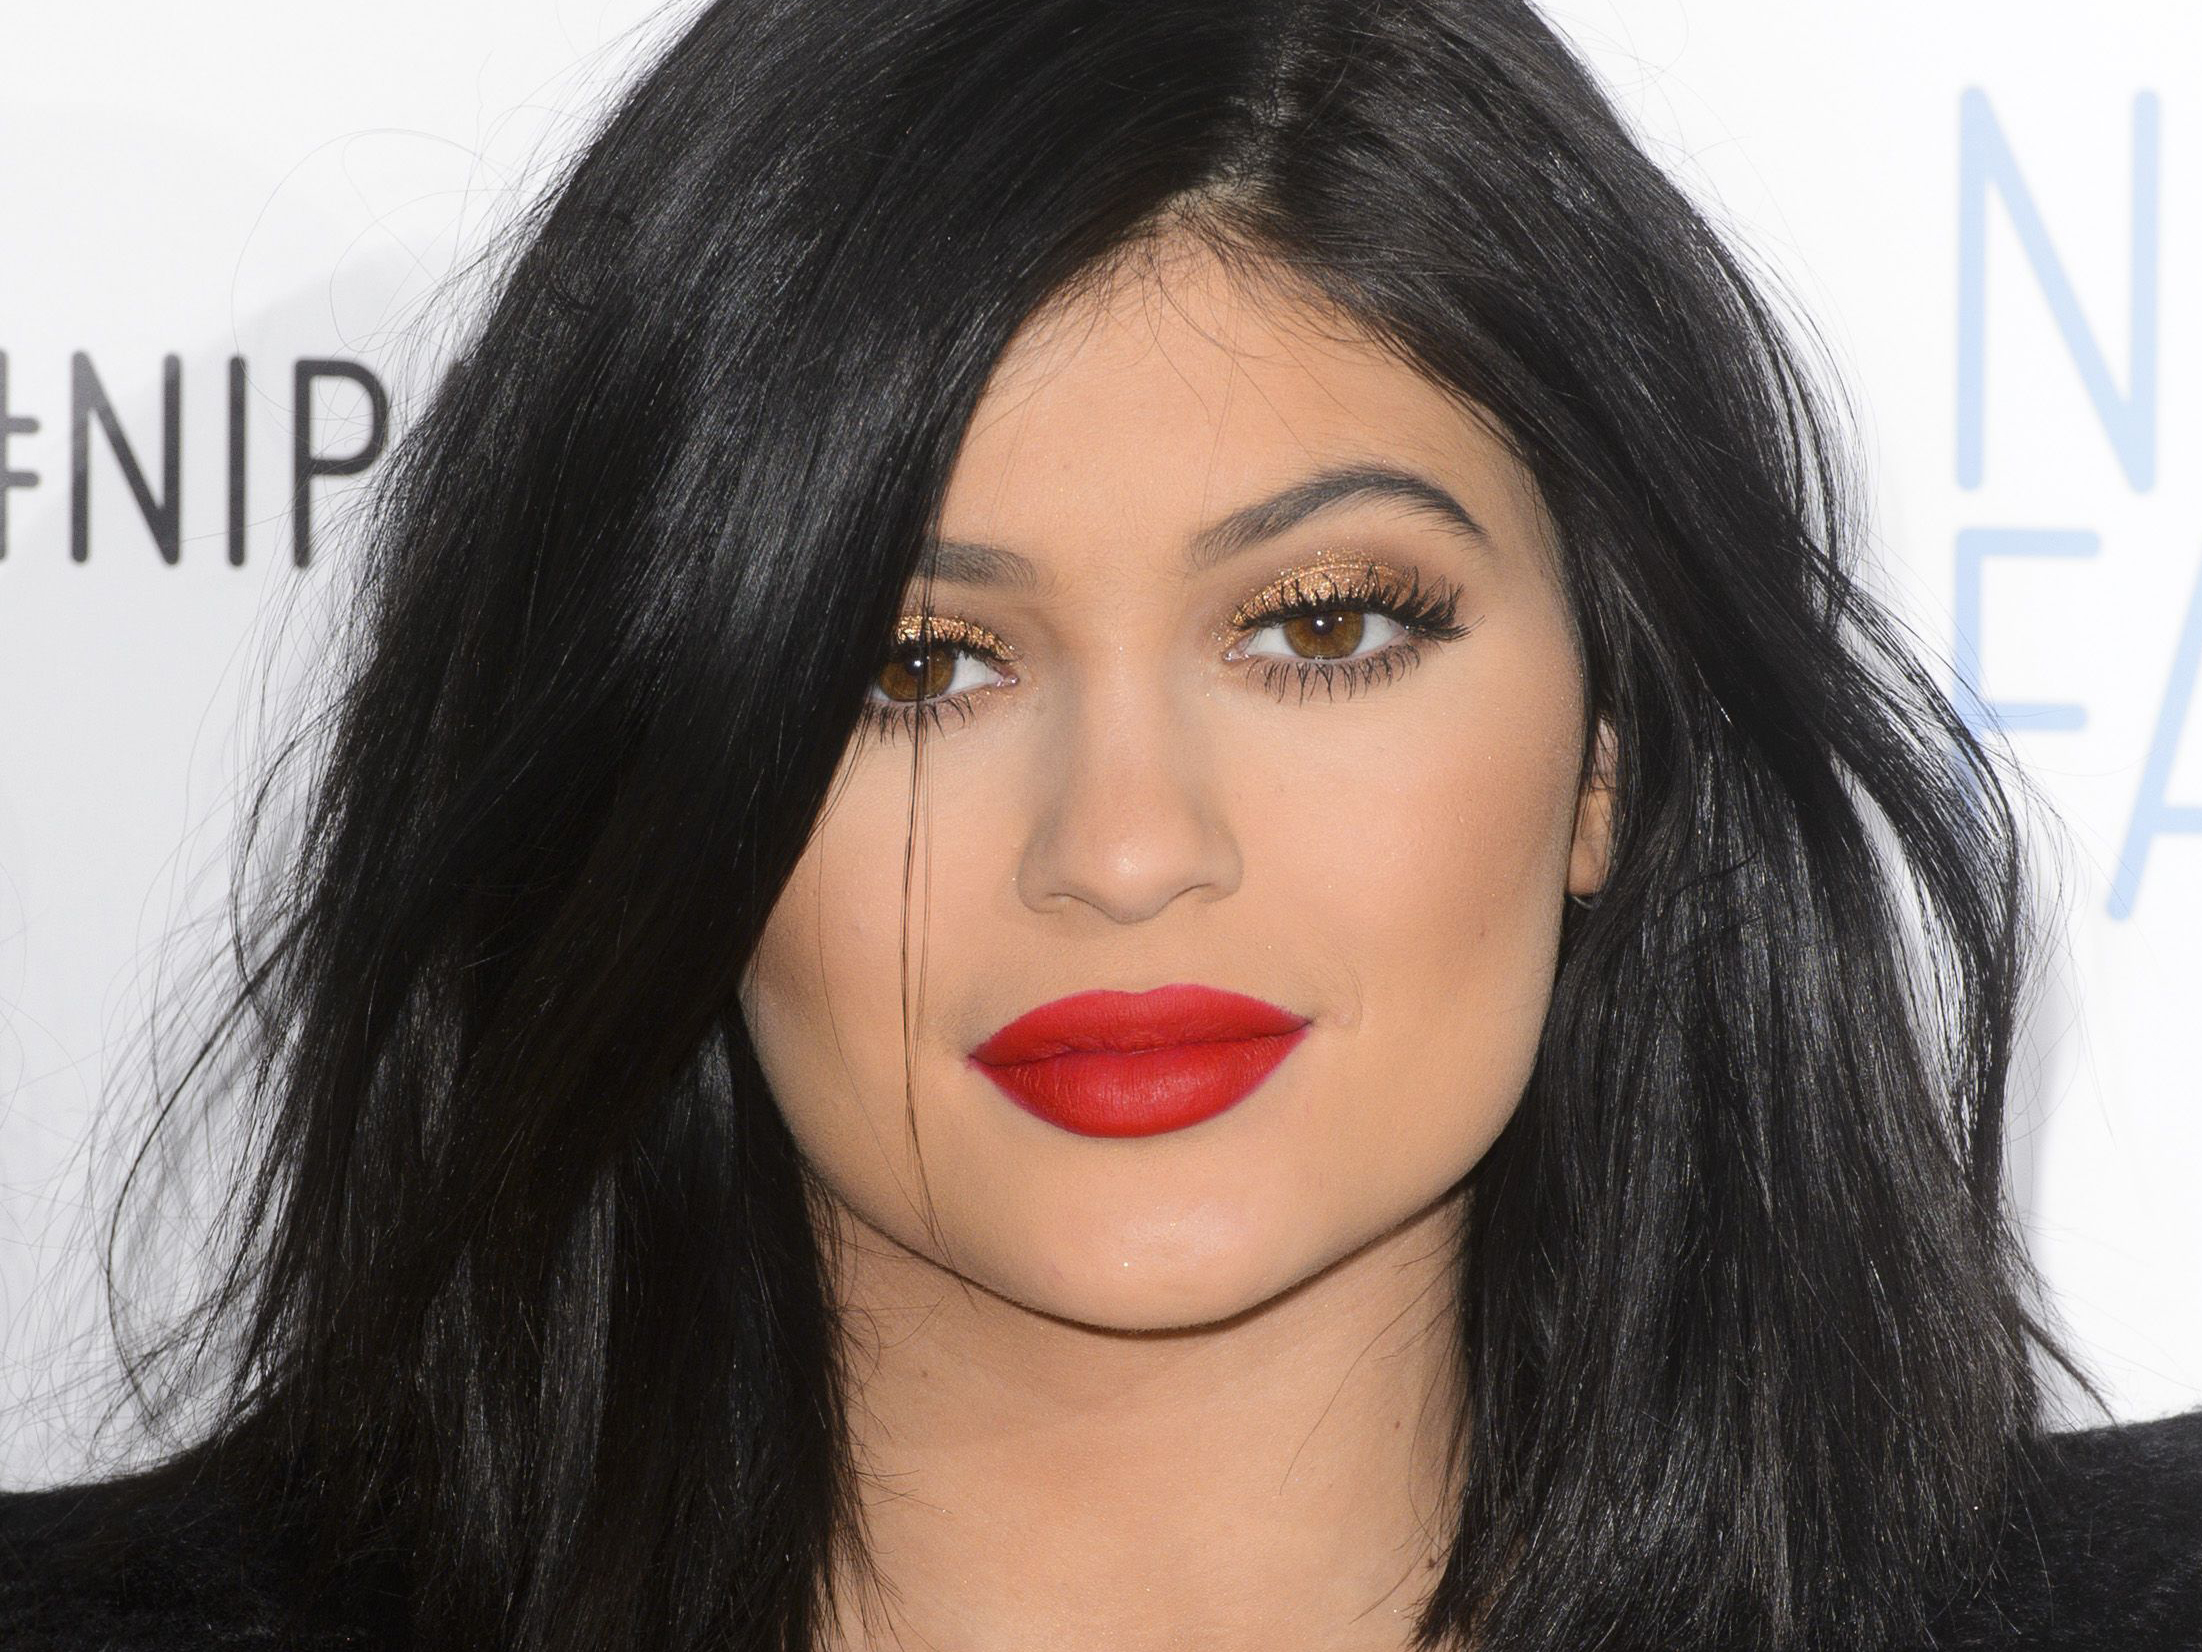 Mandatory Credit: Photo by Jonathan Hordle/REX (4528067l) Kylie Jenner Kylie Jenner announced as new Global ambassador for Nip FAB, London, Britain - 14 Mar 2015